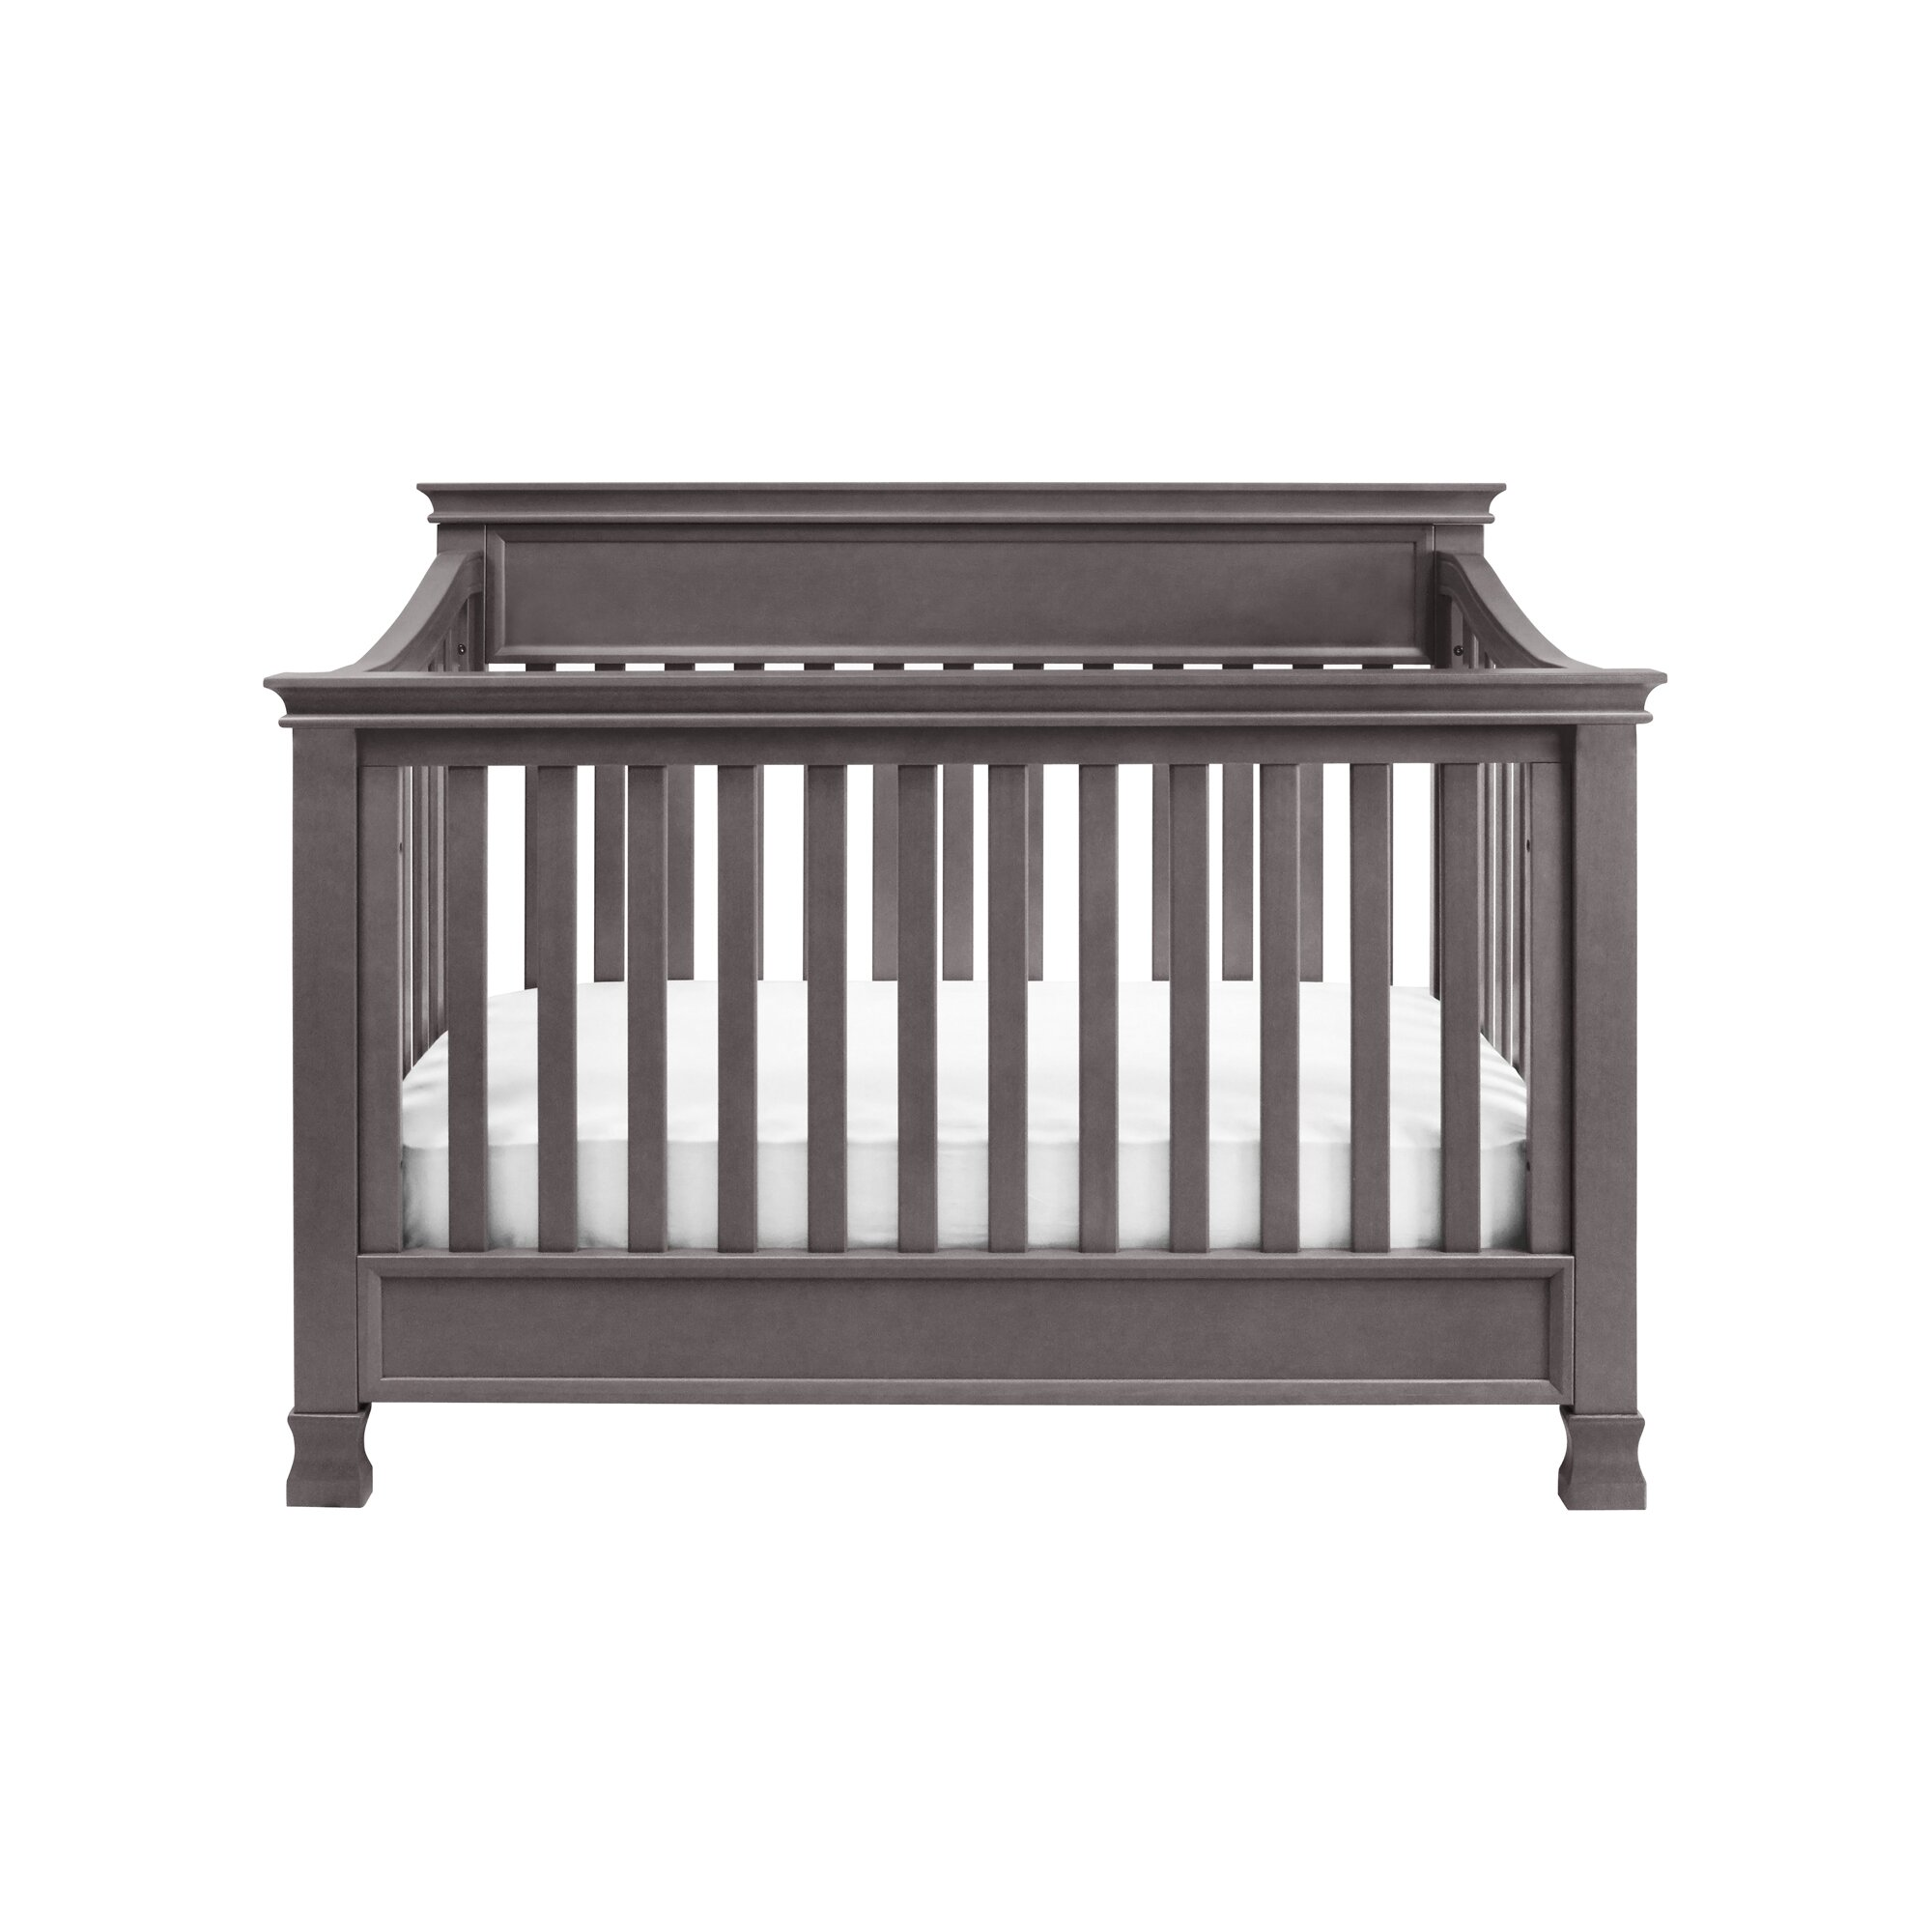 Baby cribs regulations canada - Million Dollar Baby Classic Foothill 4 In 1 Convertible Crib